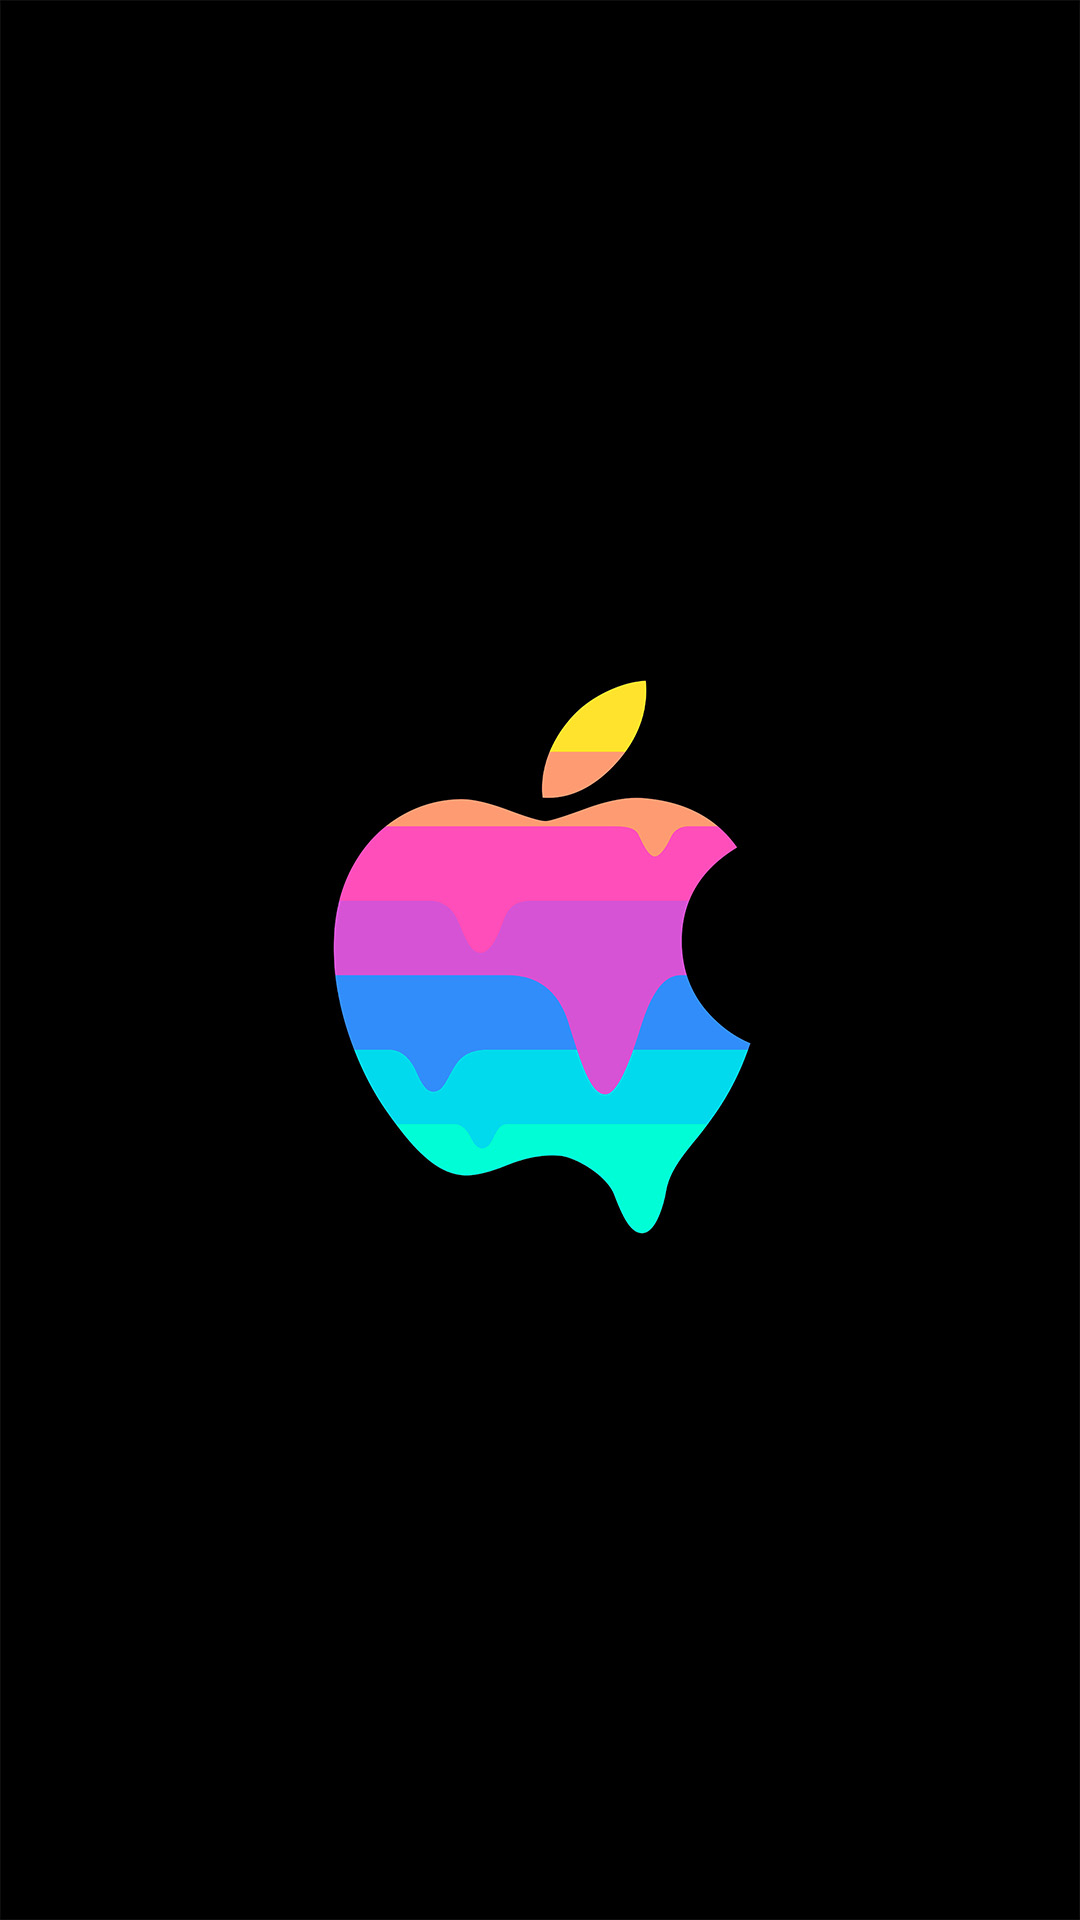 Apple Melt iPhone Wallpaper